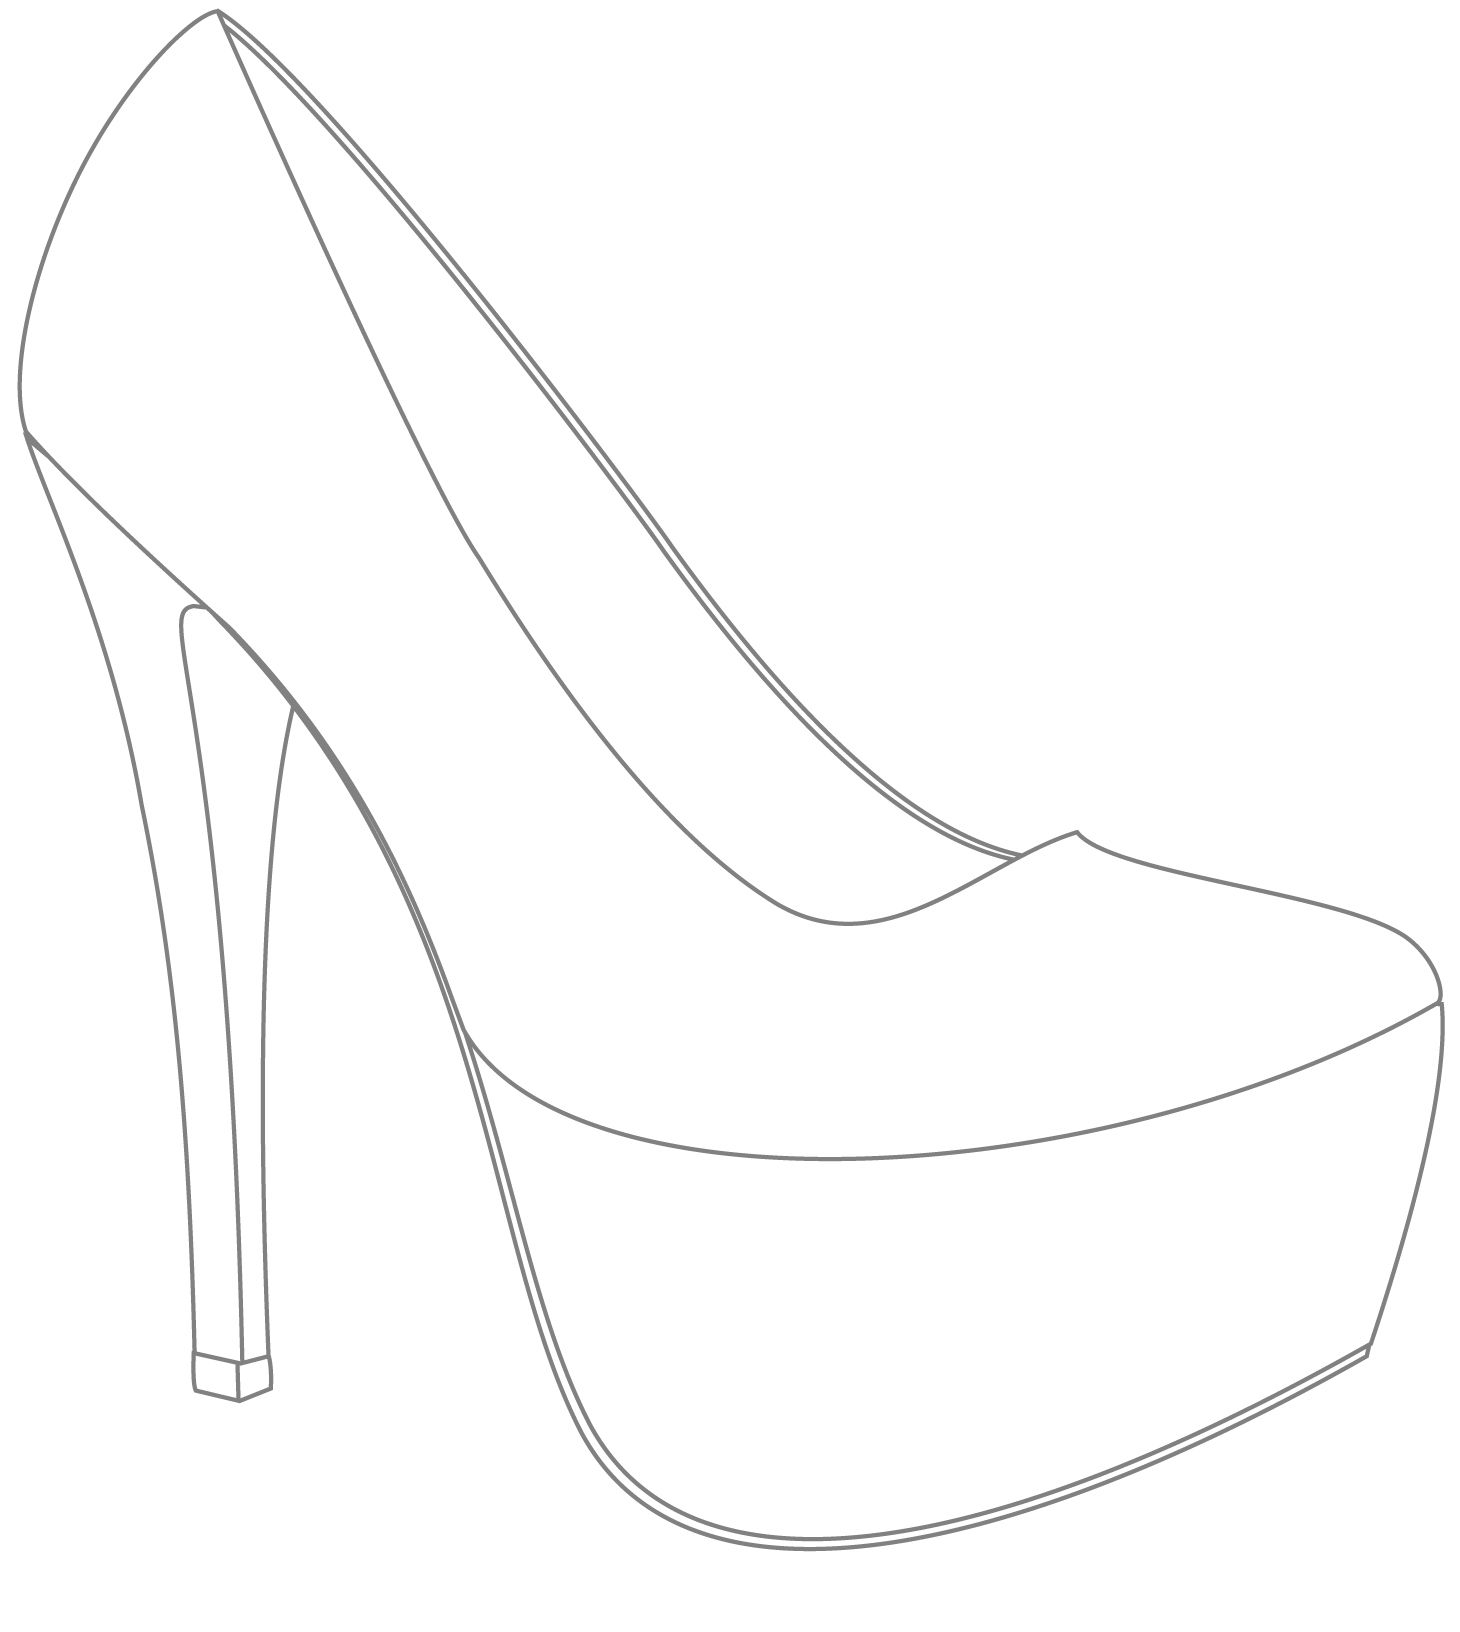 high heel shoe design template - template for shoes design win your wedding shoes with